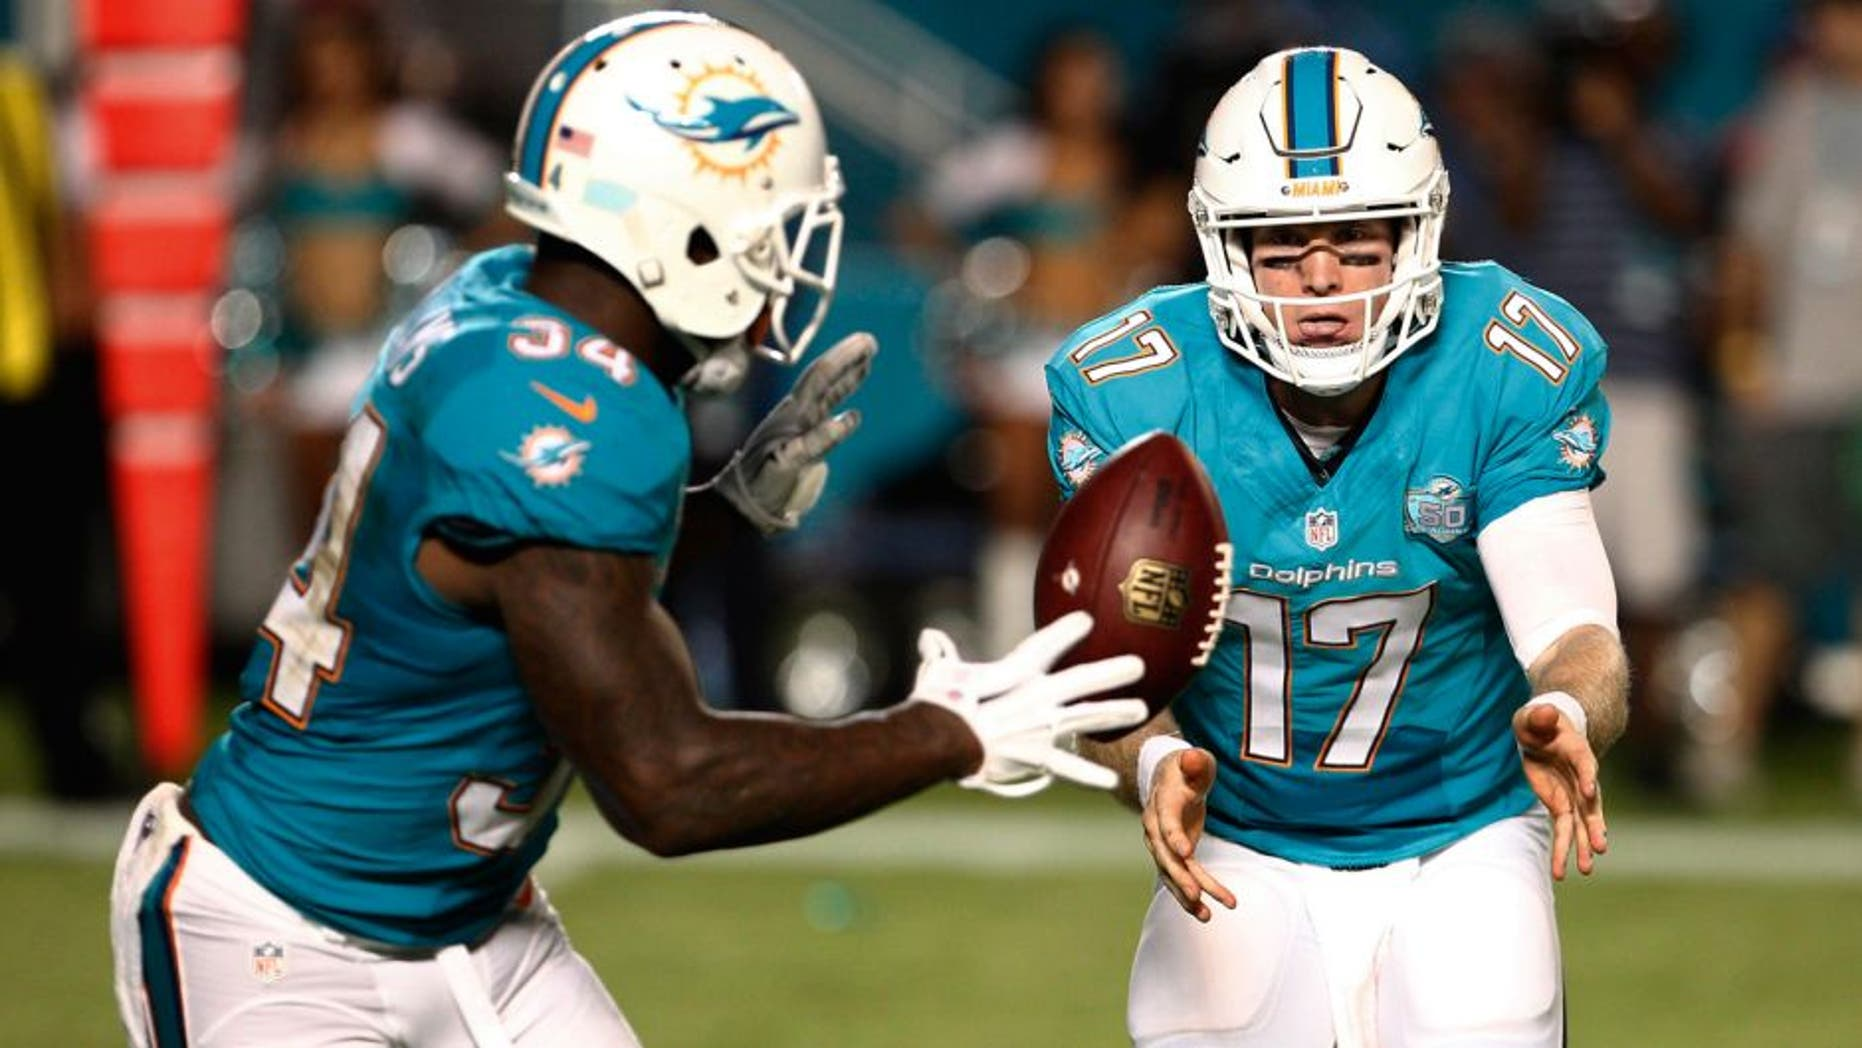 Aug 29, 2015; Miami Gardens, FL, USA; Miami Dolphins quarterback Ryan Tannehill (17) pitches to Dolphins running back Damien Williams (34) during the second quarter of an NFL preseason football game against the Atlanta Falcons at Sun Life Stadium. Mandatory Credit: Reinhold Matay-USA TODAY Sports